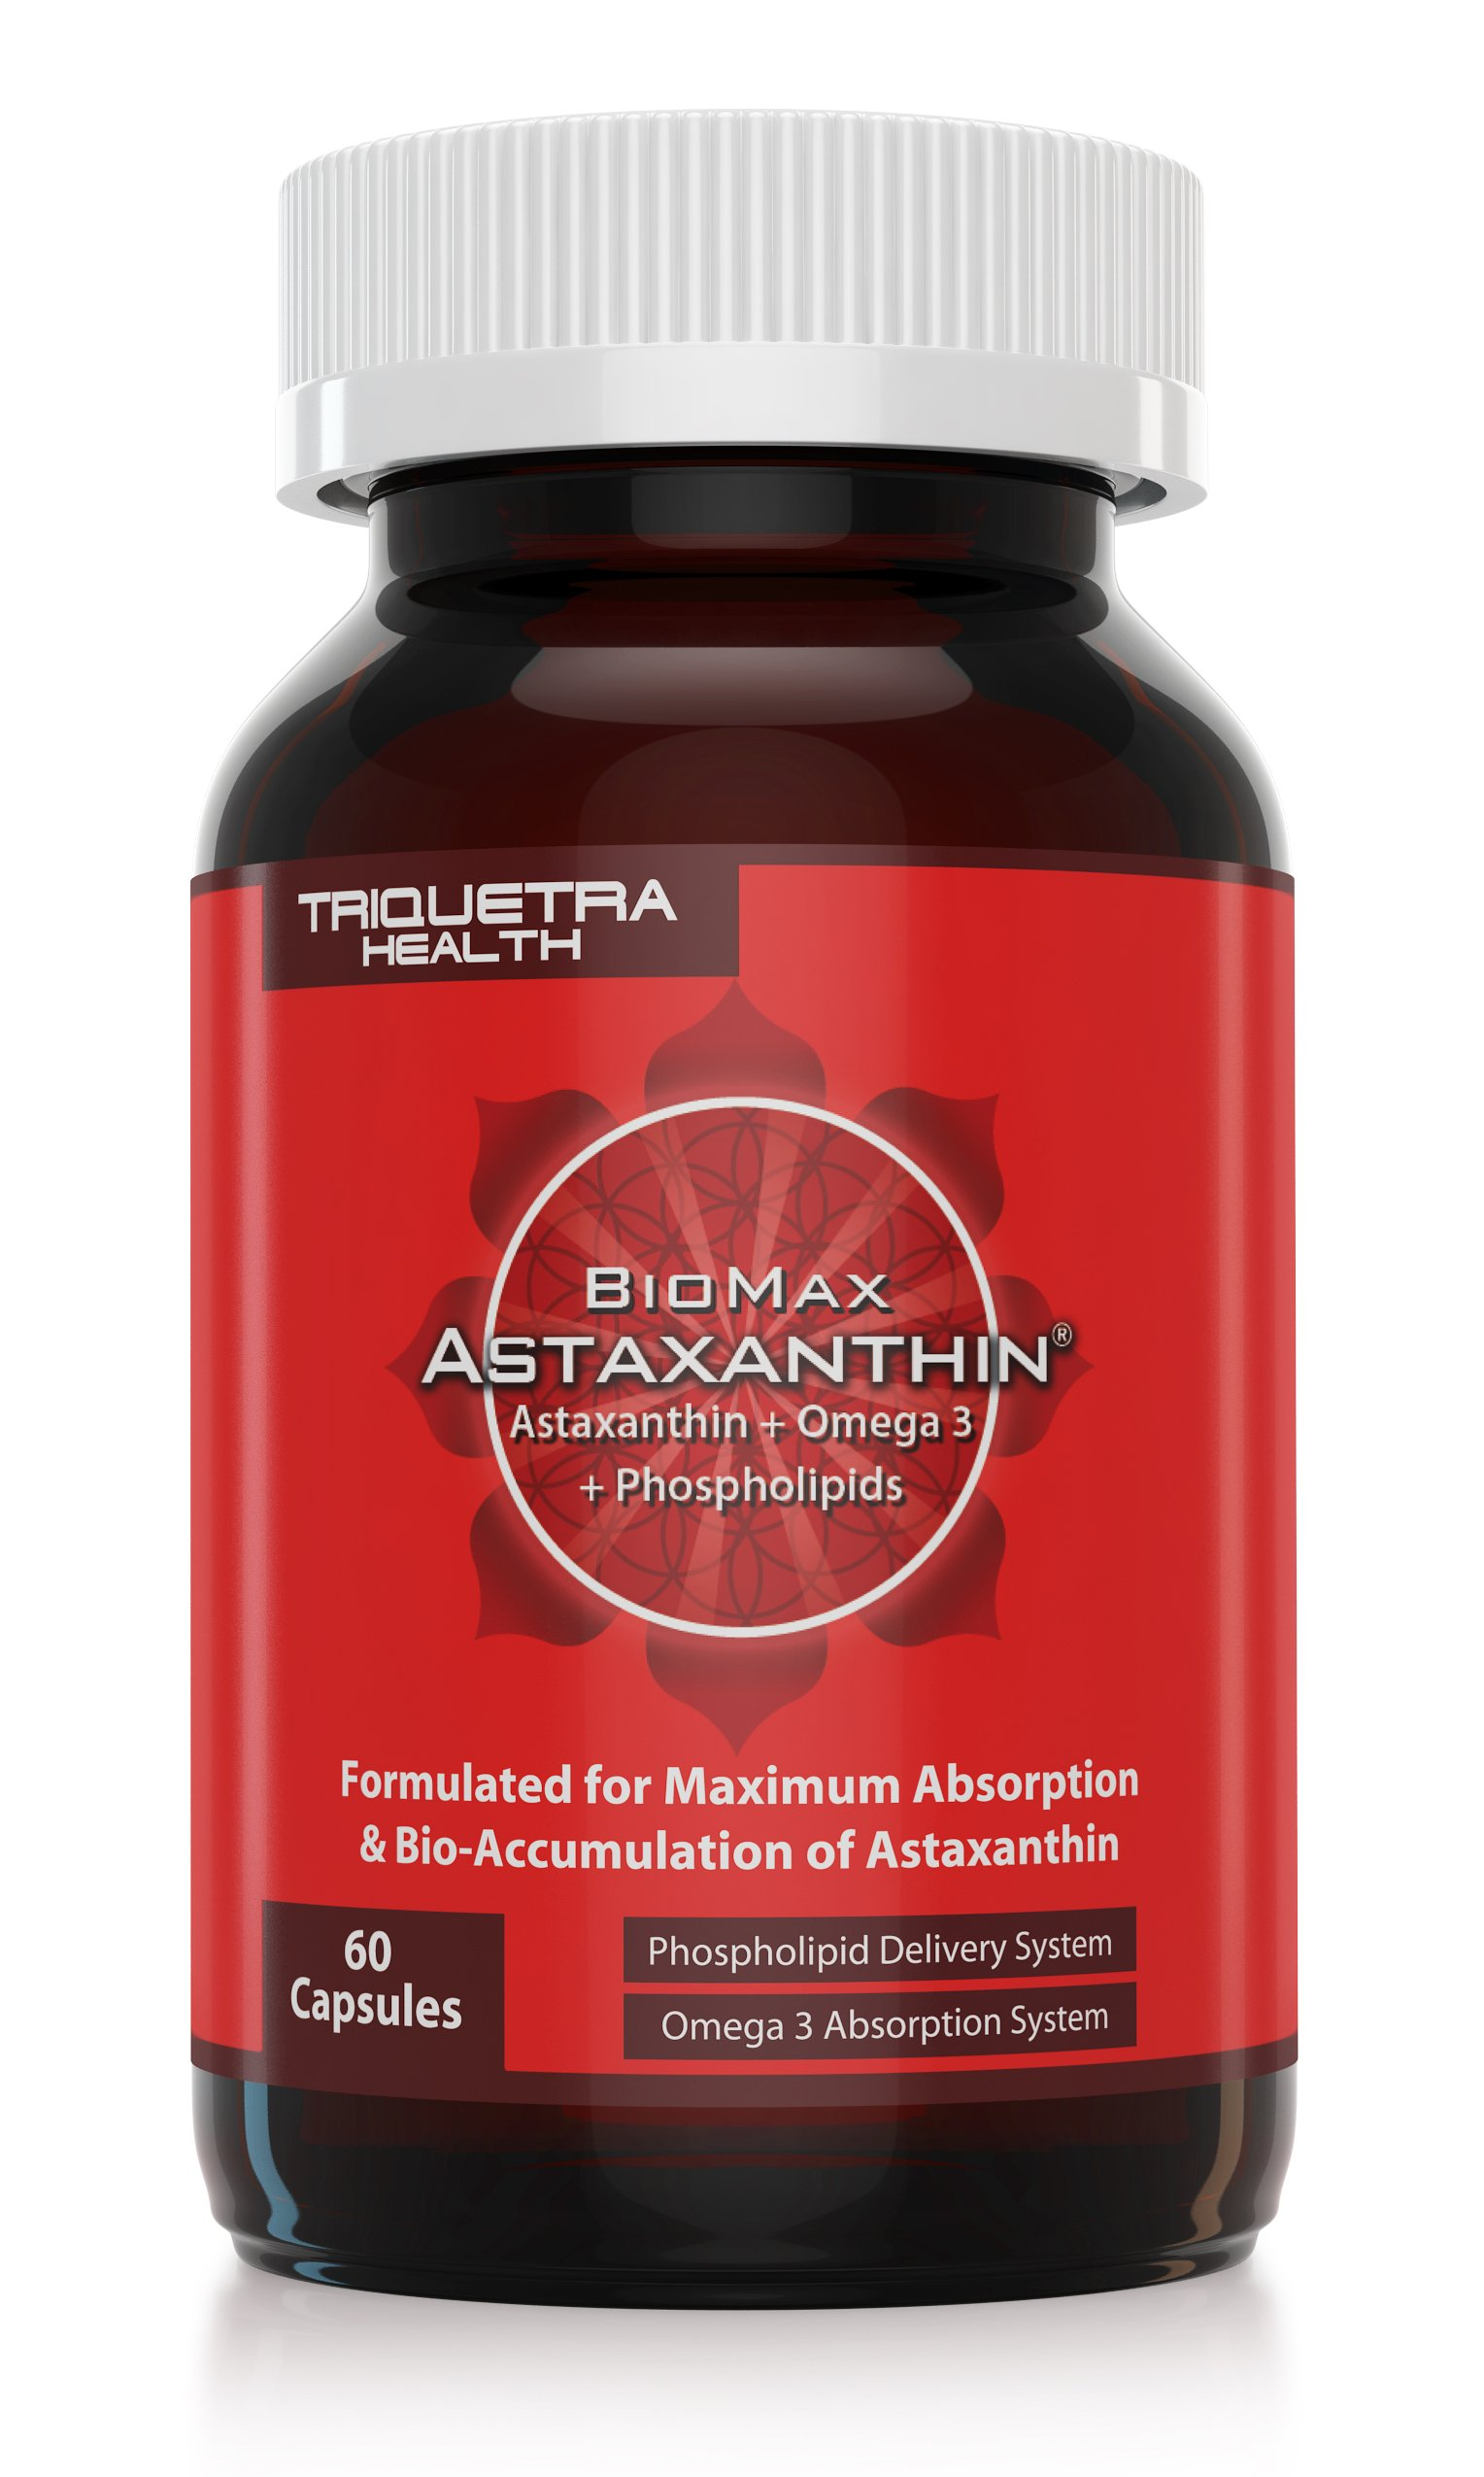 BioMax Astaxanthin: Scientifically Shown to be 370% More Effective Than Standard Astaxanthin - Combines Natural Astaxanthin Plus Omega 3 ALA & Phospholipids to Maximize Absorption & Bio-Accumulation 60 caps